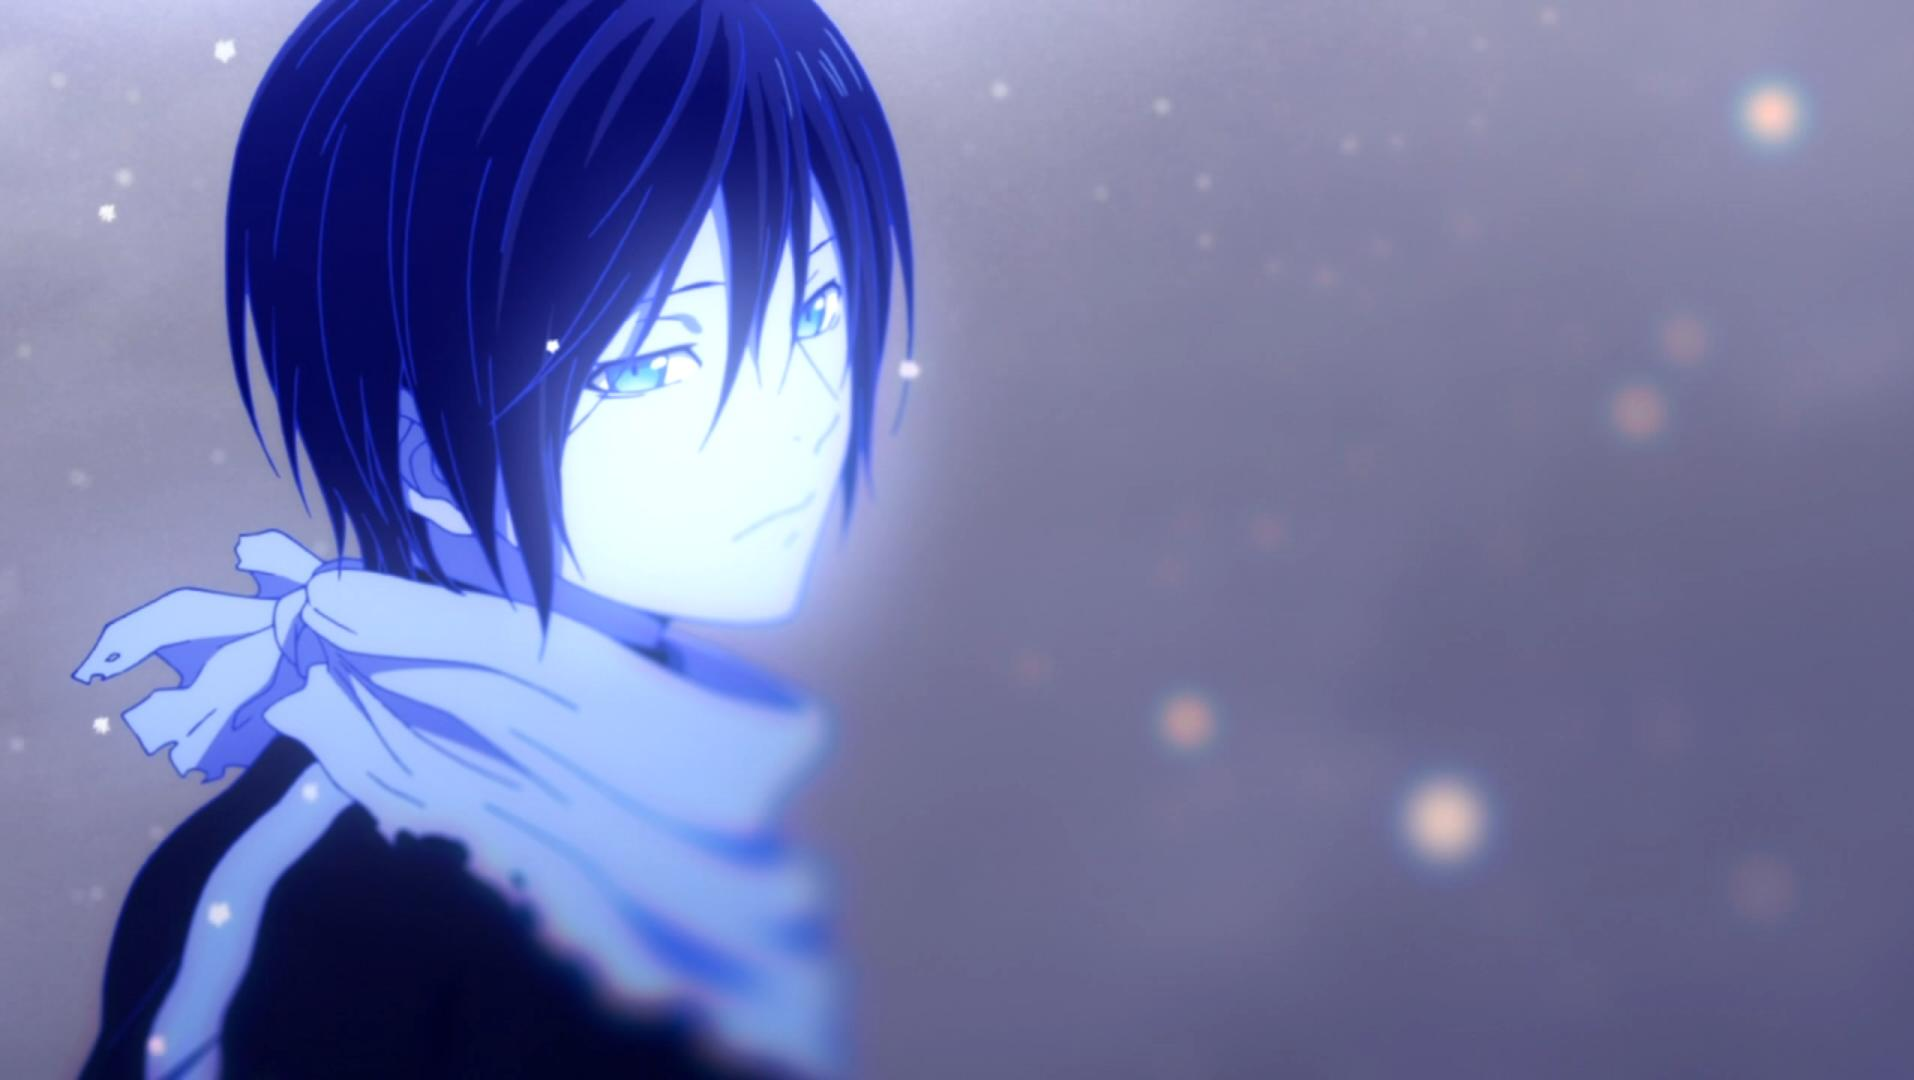 imagen noragami wallpaper by - photo #11